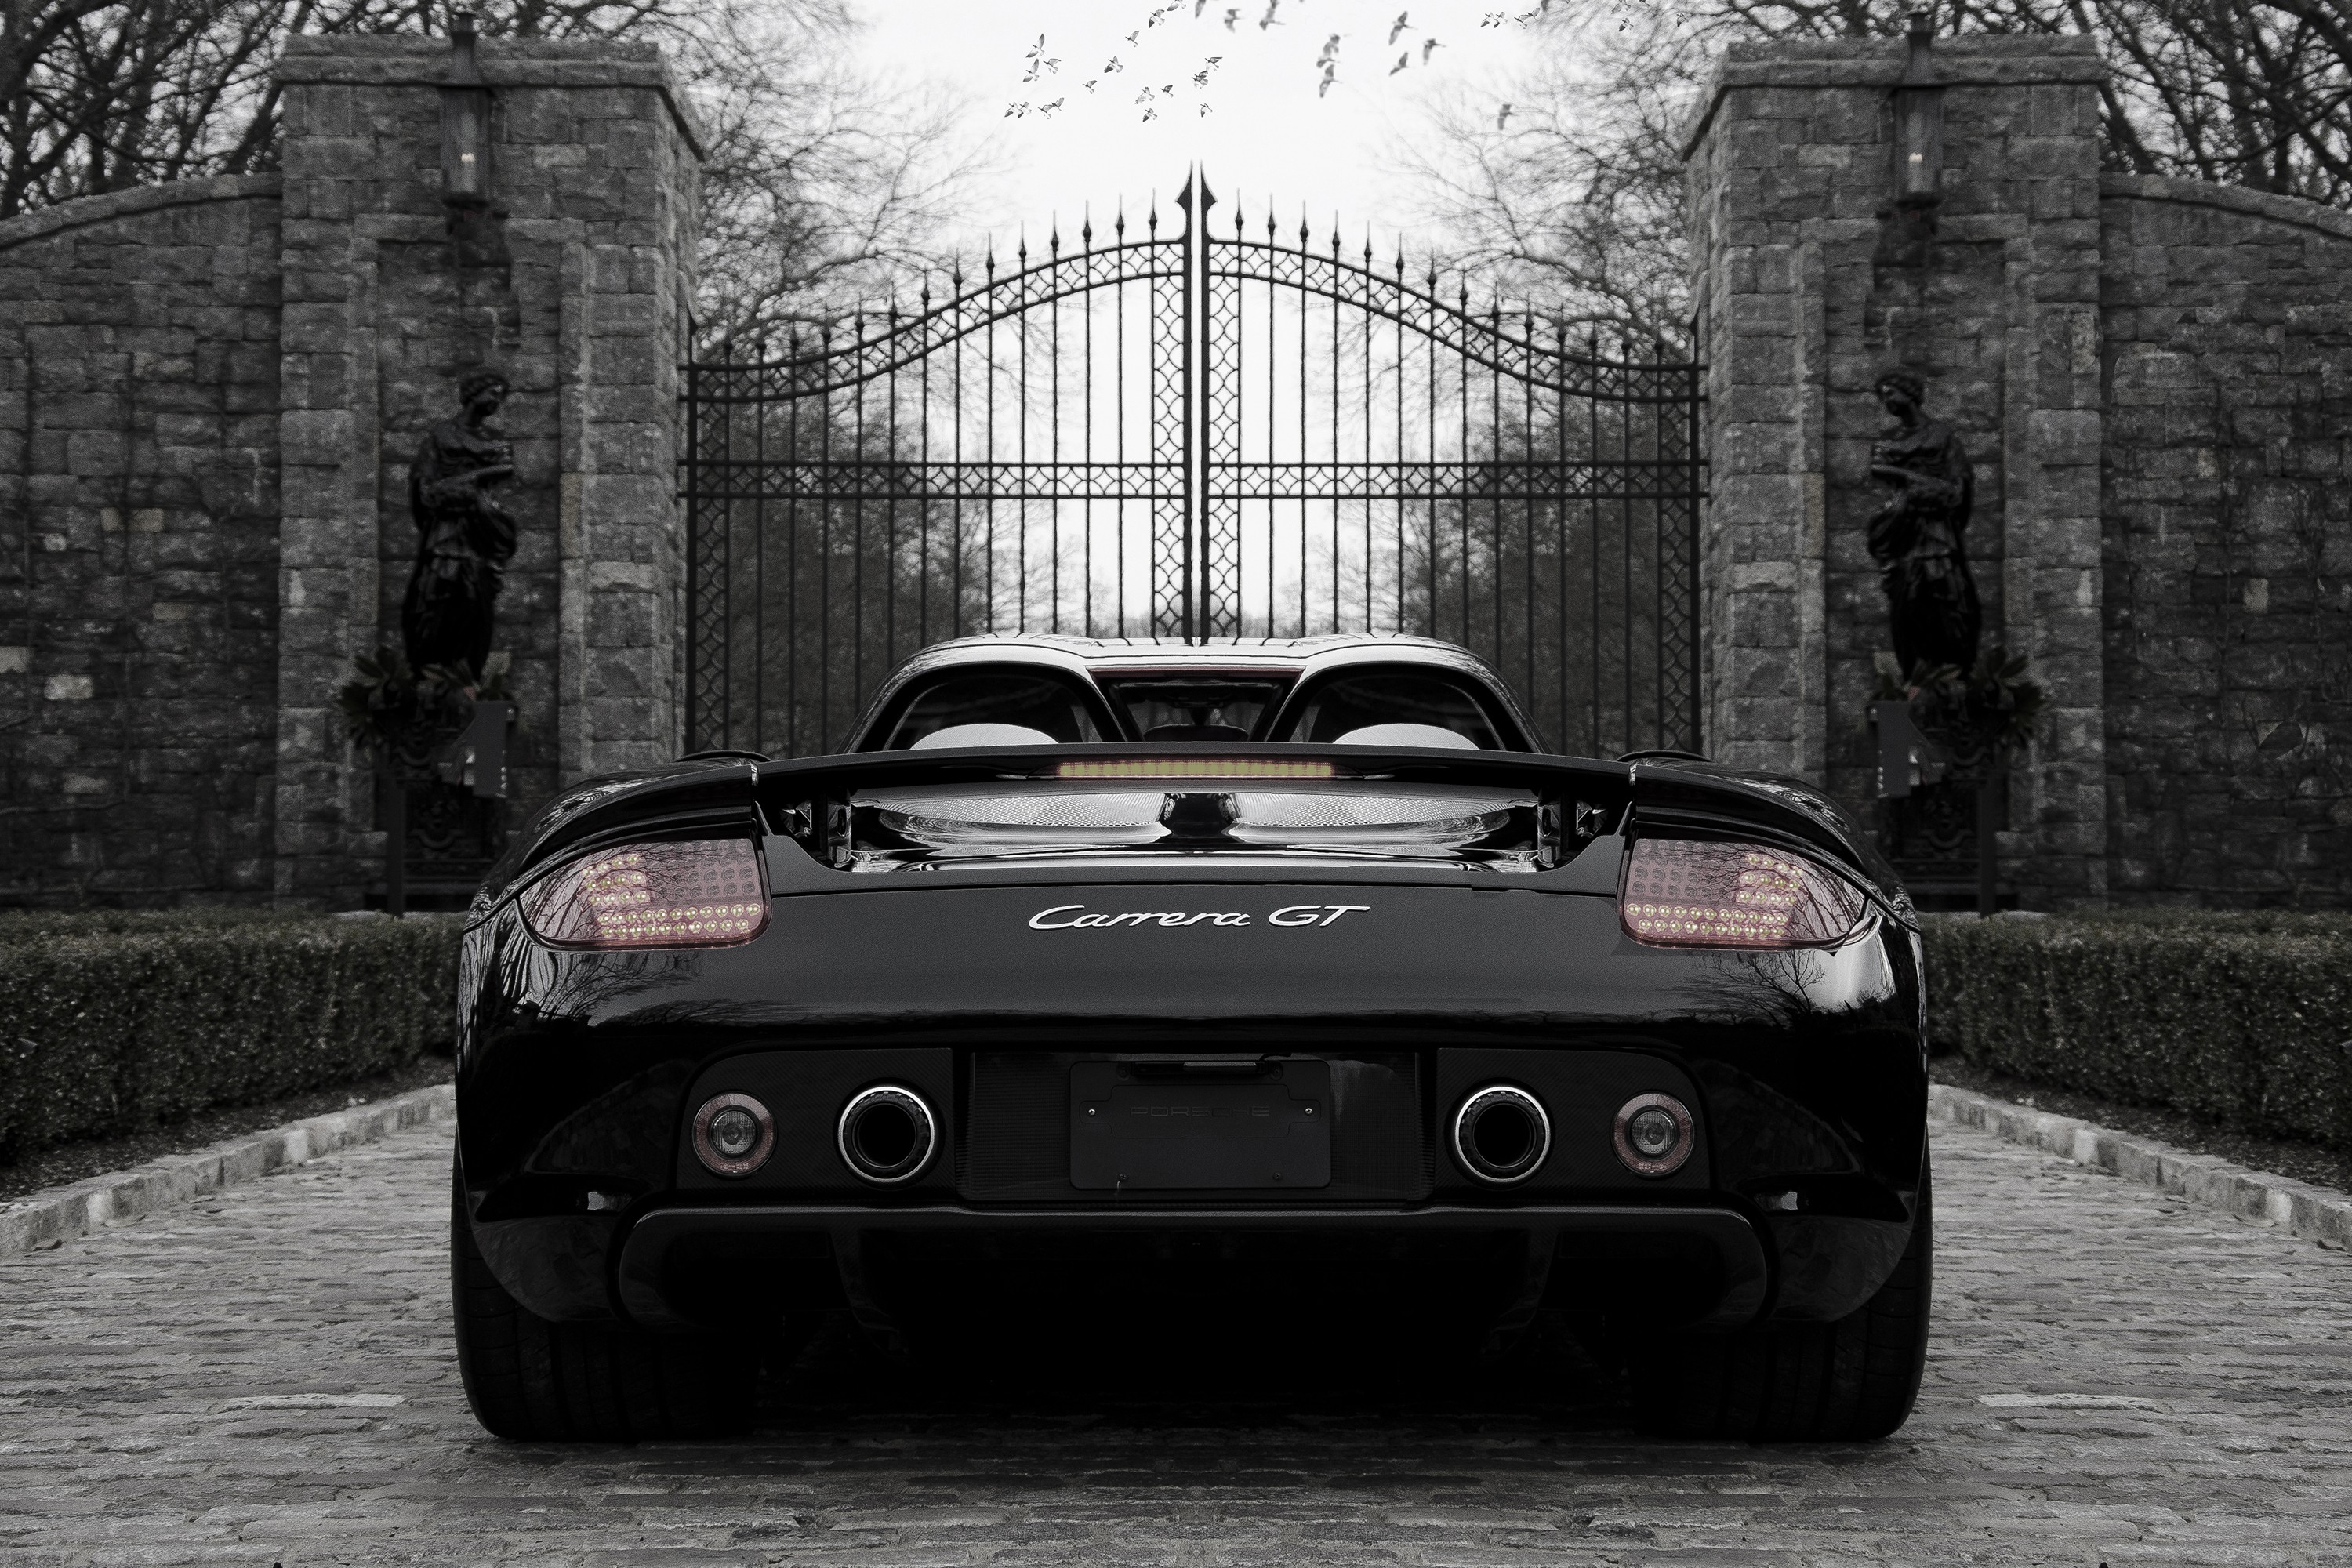 Porsche-Carrera-Gt-Sports-Car-Black-And-